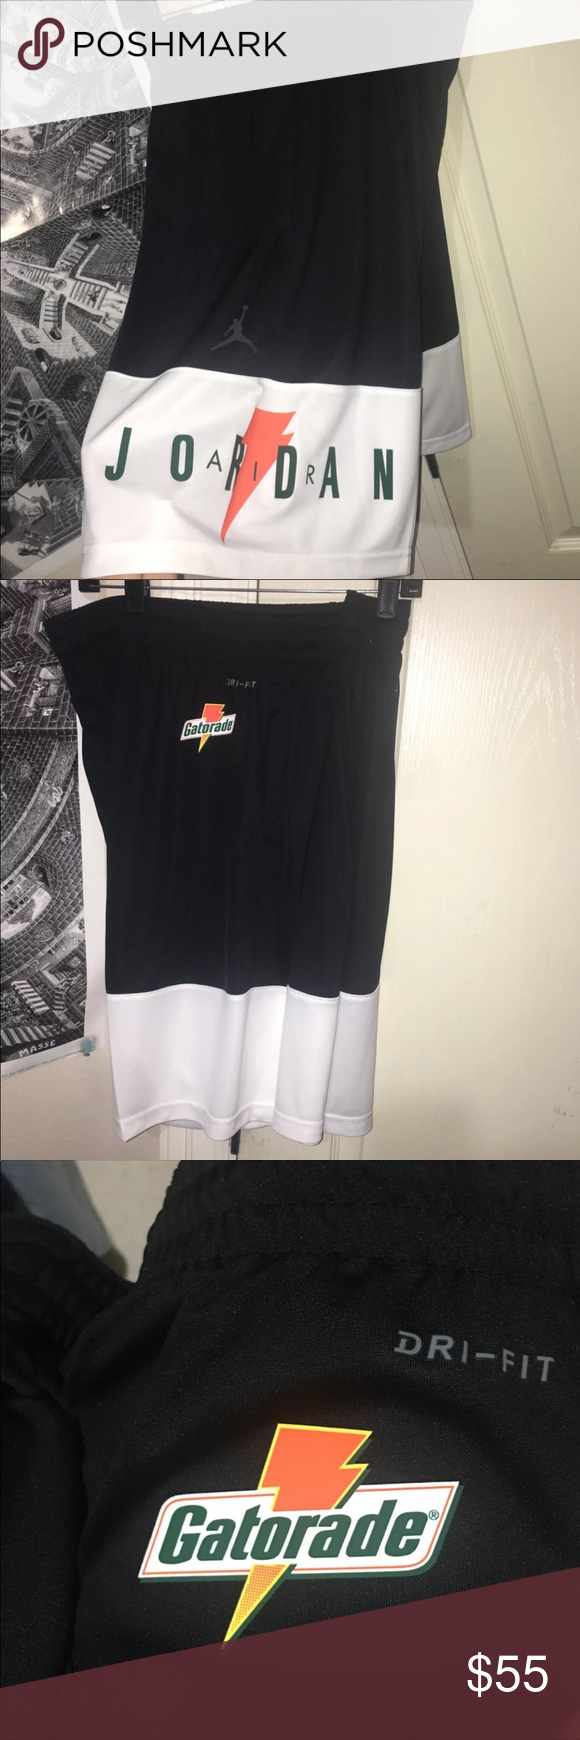 c4ed9df76a7 Jordan x Gatorade Shorts Black White Green Orange Air Jordan x Gatorade  Exclusive Dri Fit Shorts Size: Large or XXL (ask for your size) Brand New  With Tags ...